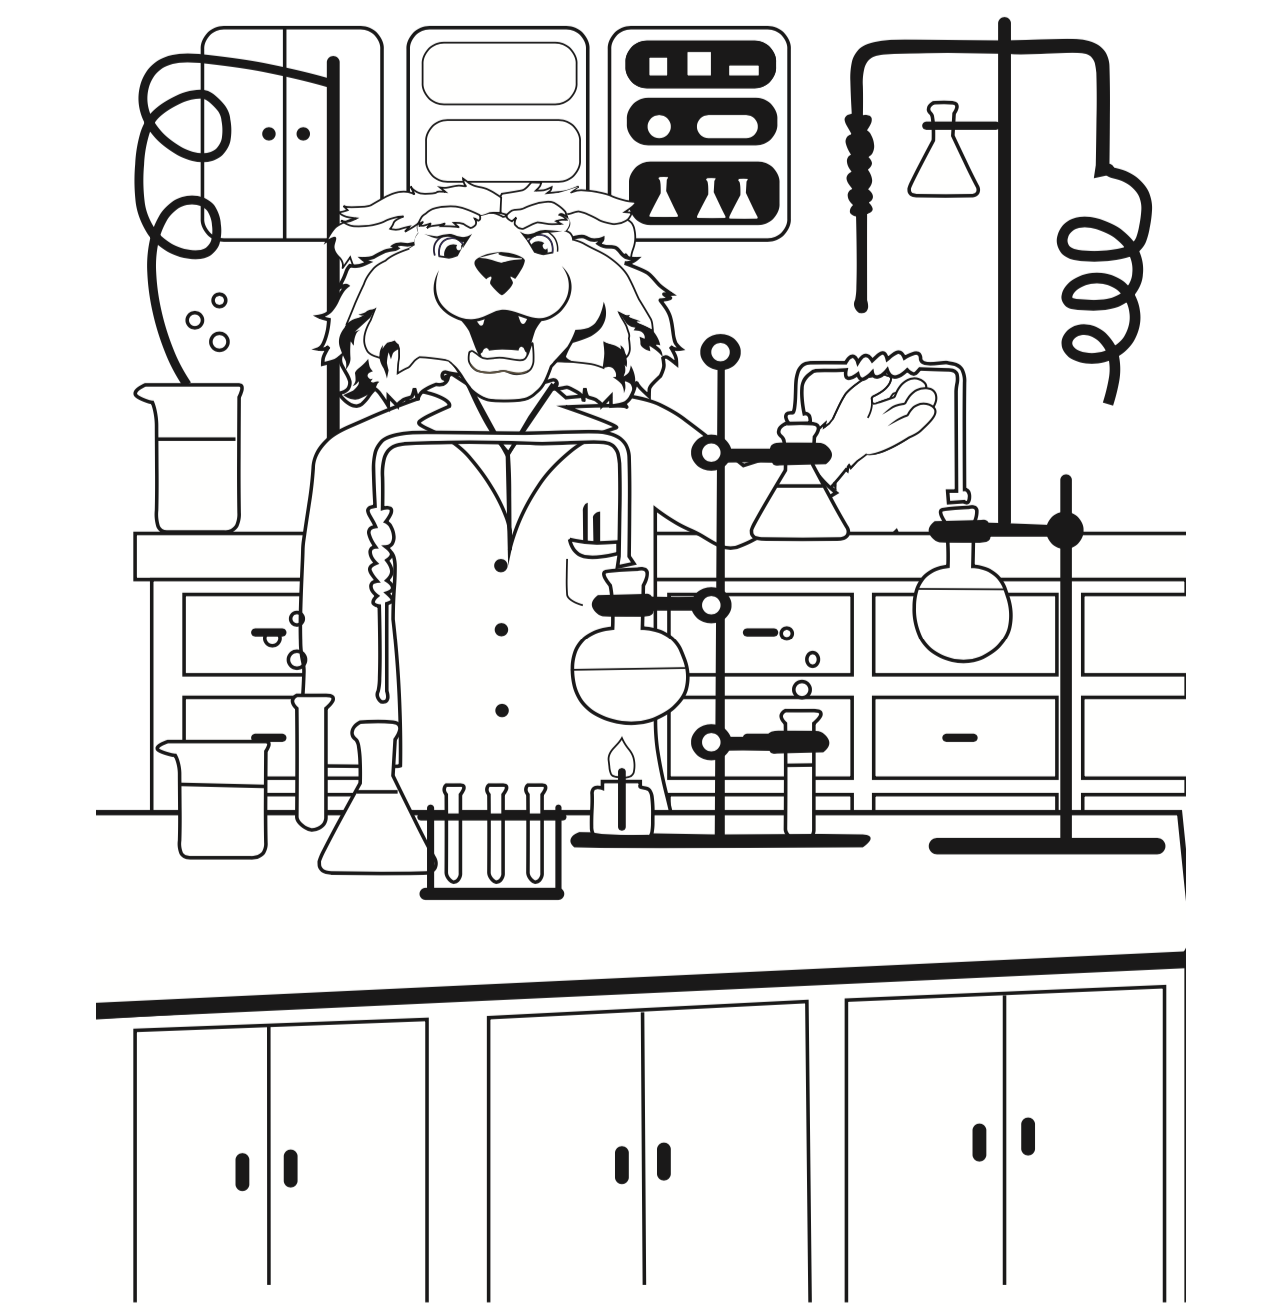 Image of a coloring book page of science paws